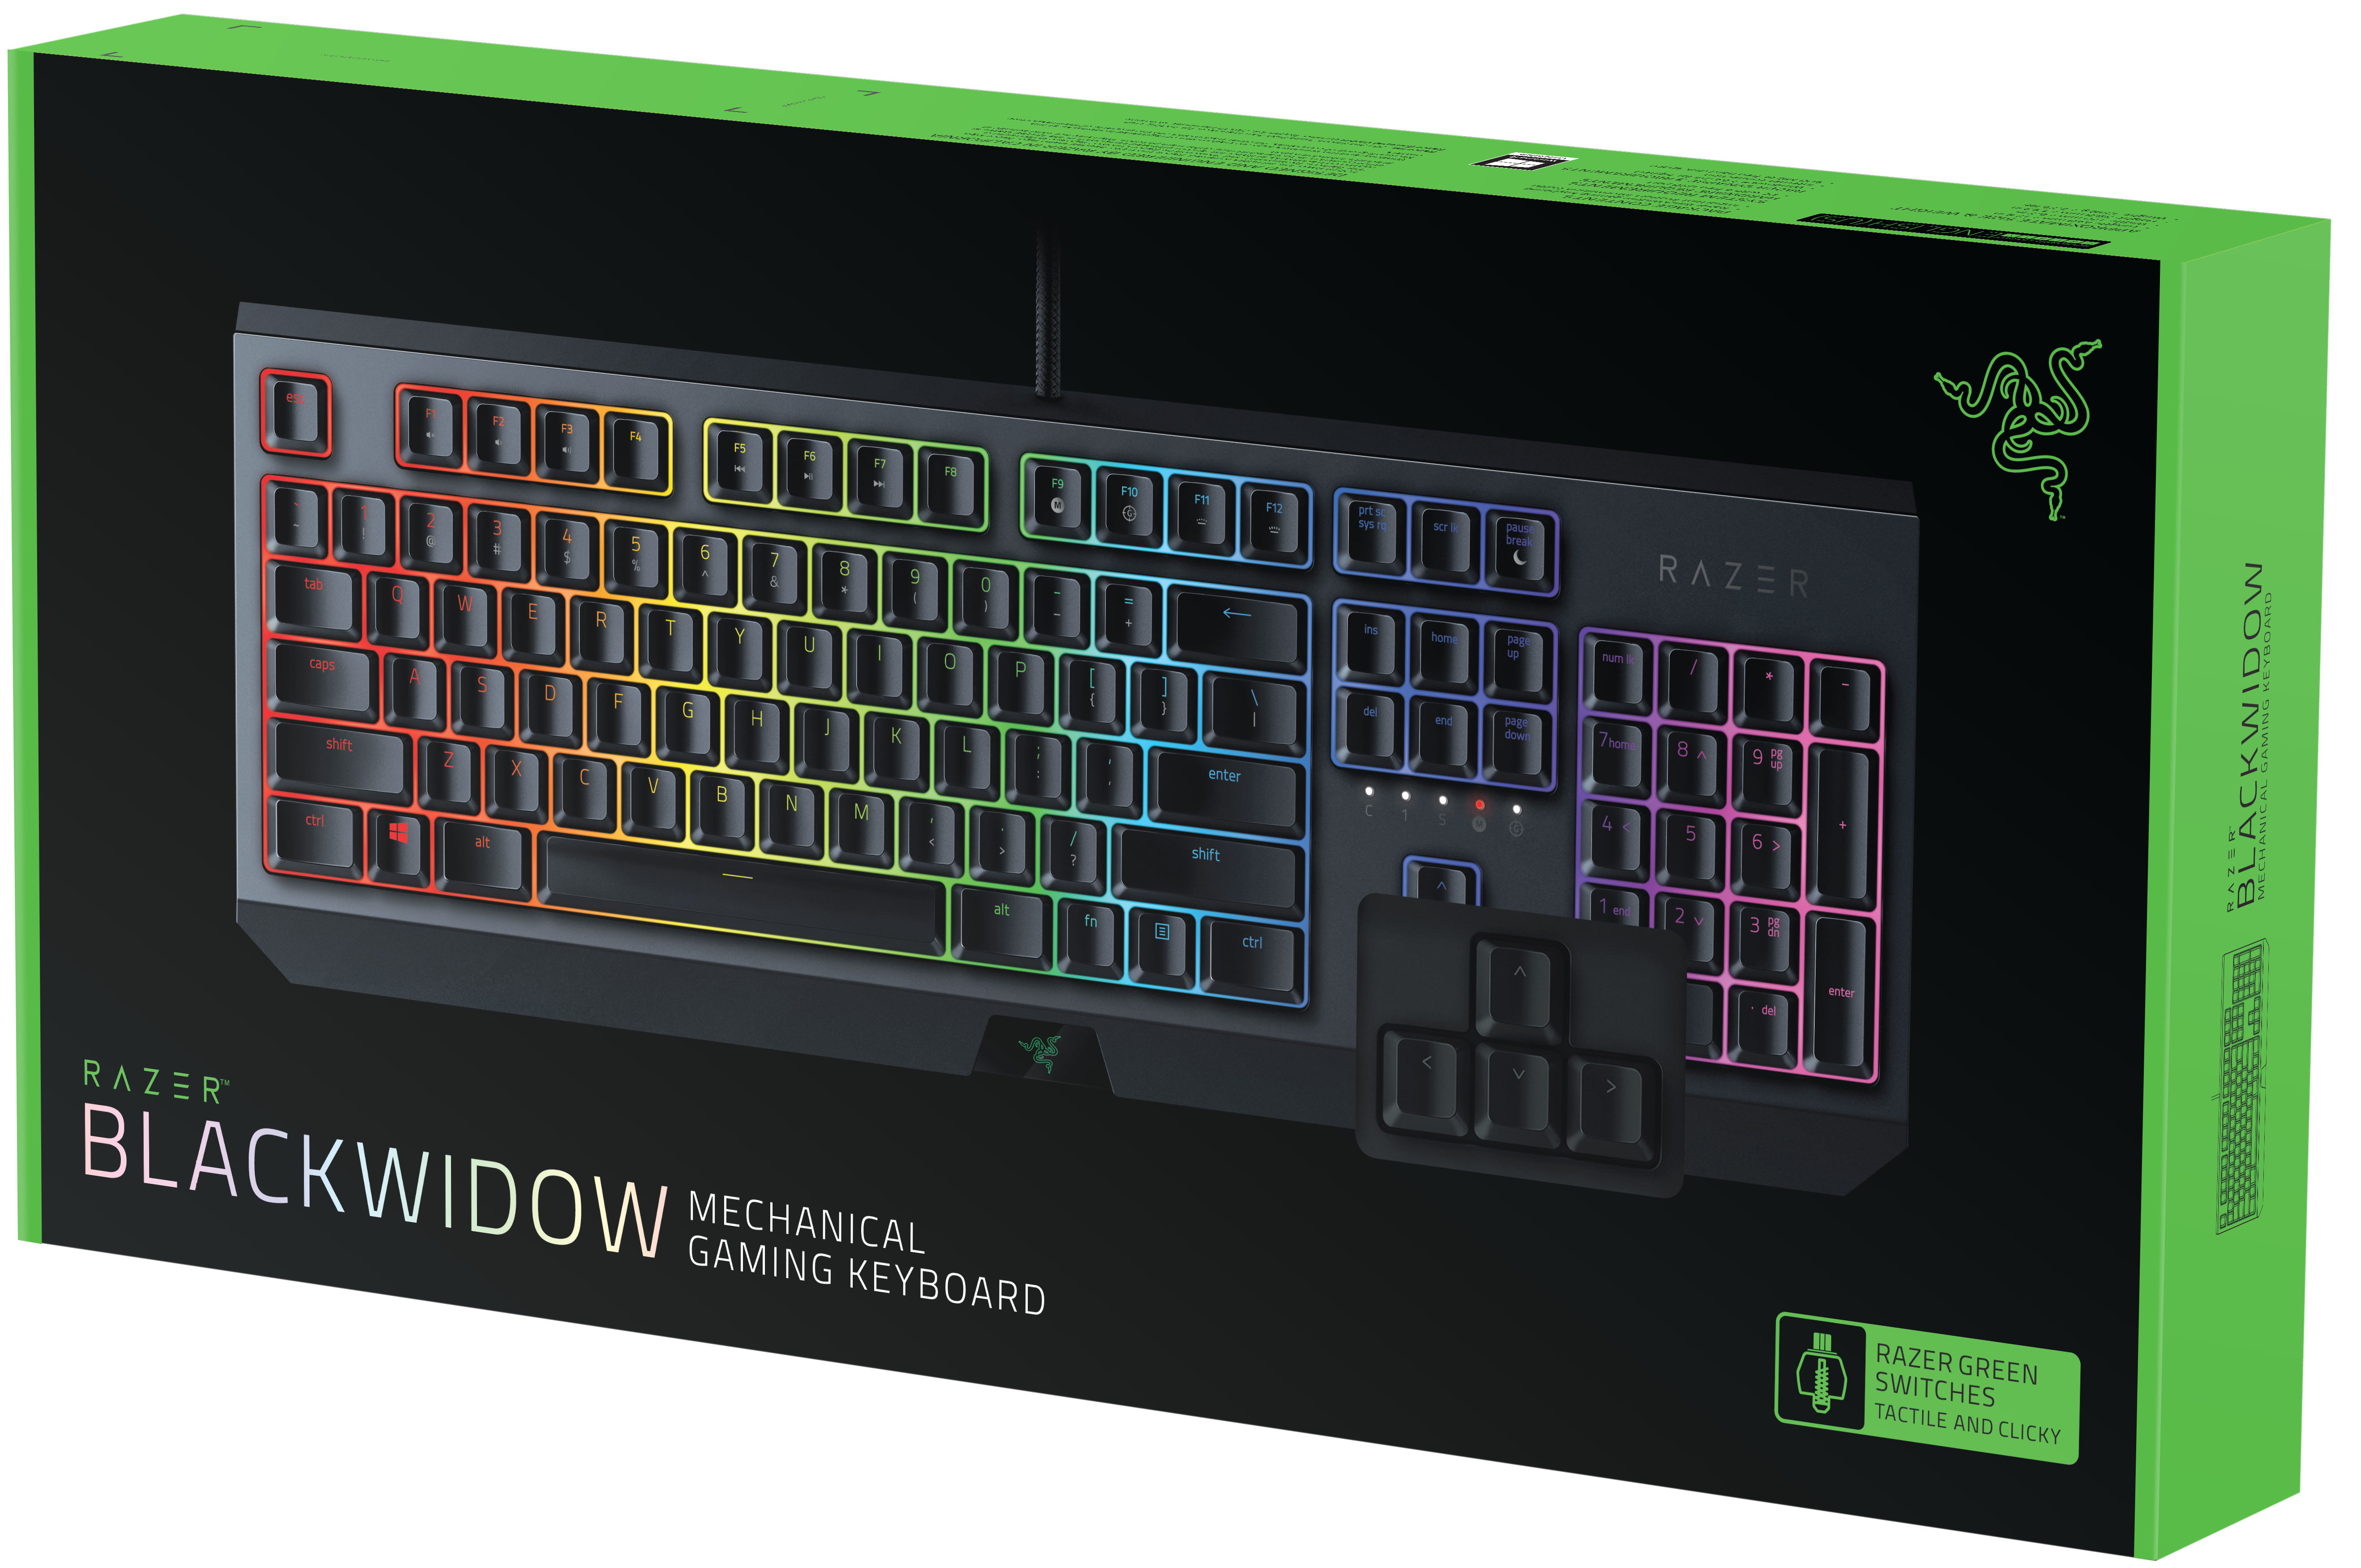 Механична клавиатура Razer BlackWidow - 5